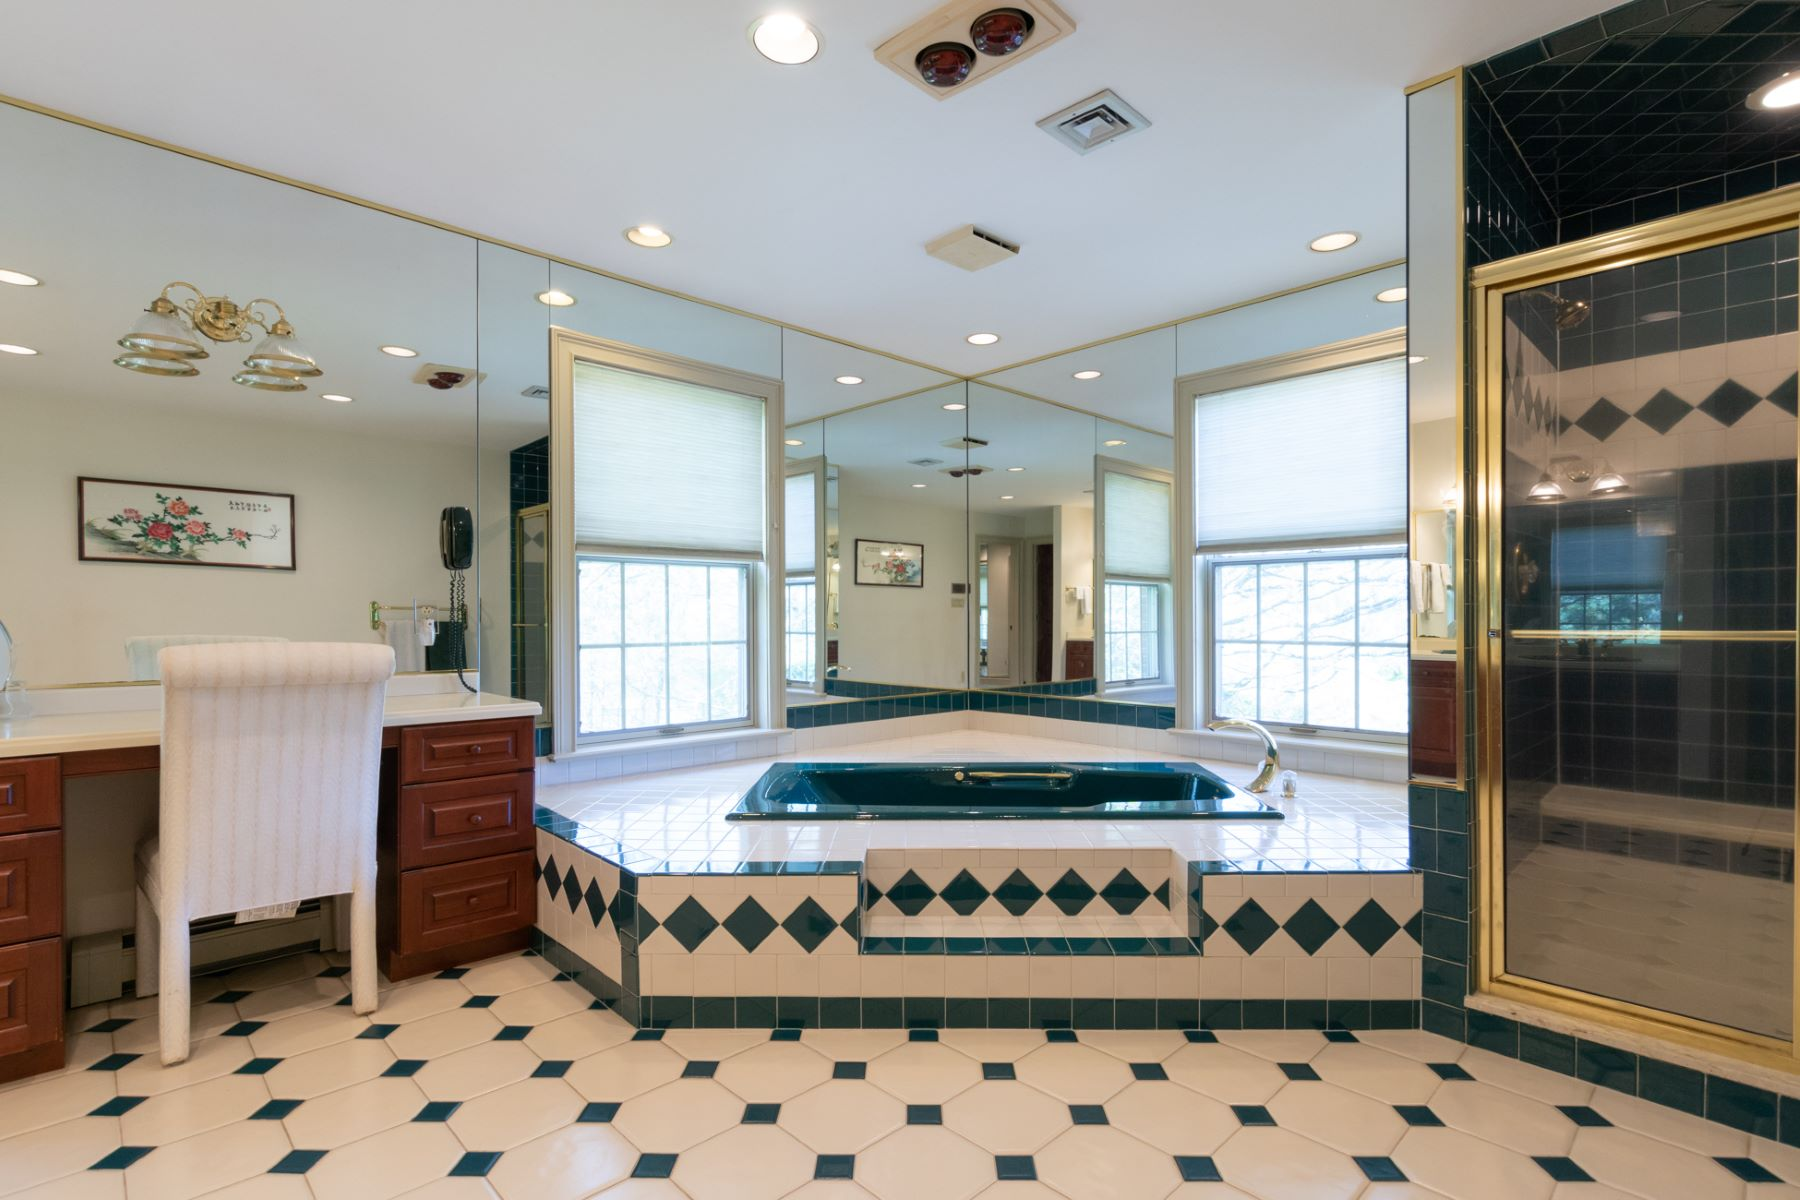 Additional photo for property listing at Masterpiece of Custom Design On 10 Sprawling Acres 7 Woodland Road, Newtown, Πενσιλβανια 18940 Ηνωμένες Πολιτείες